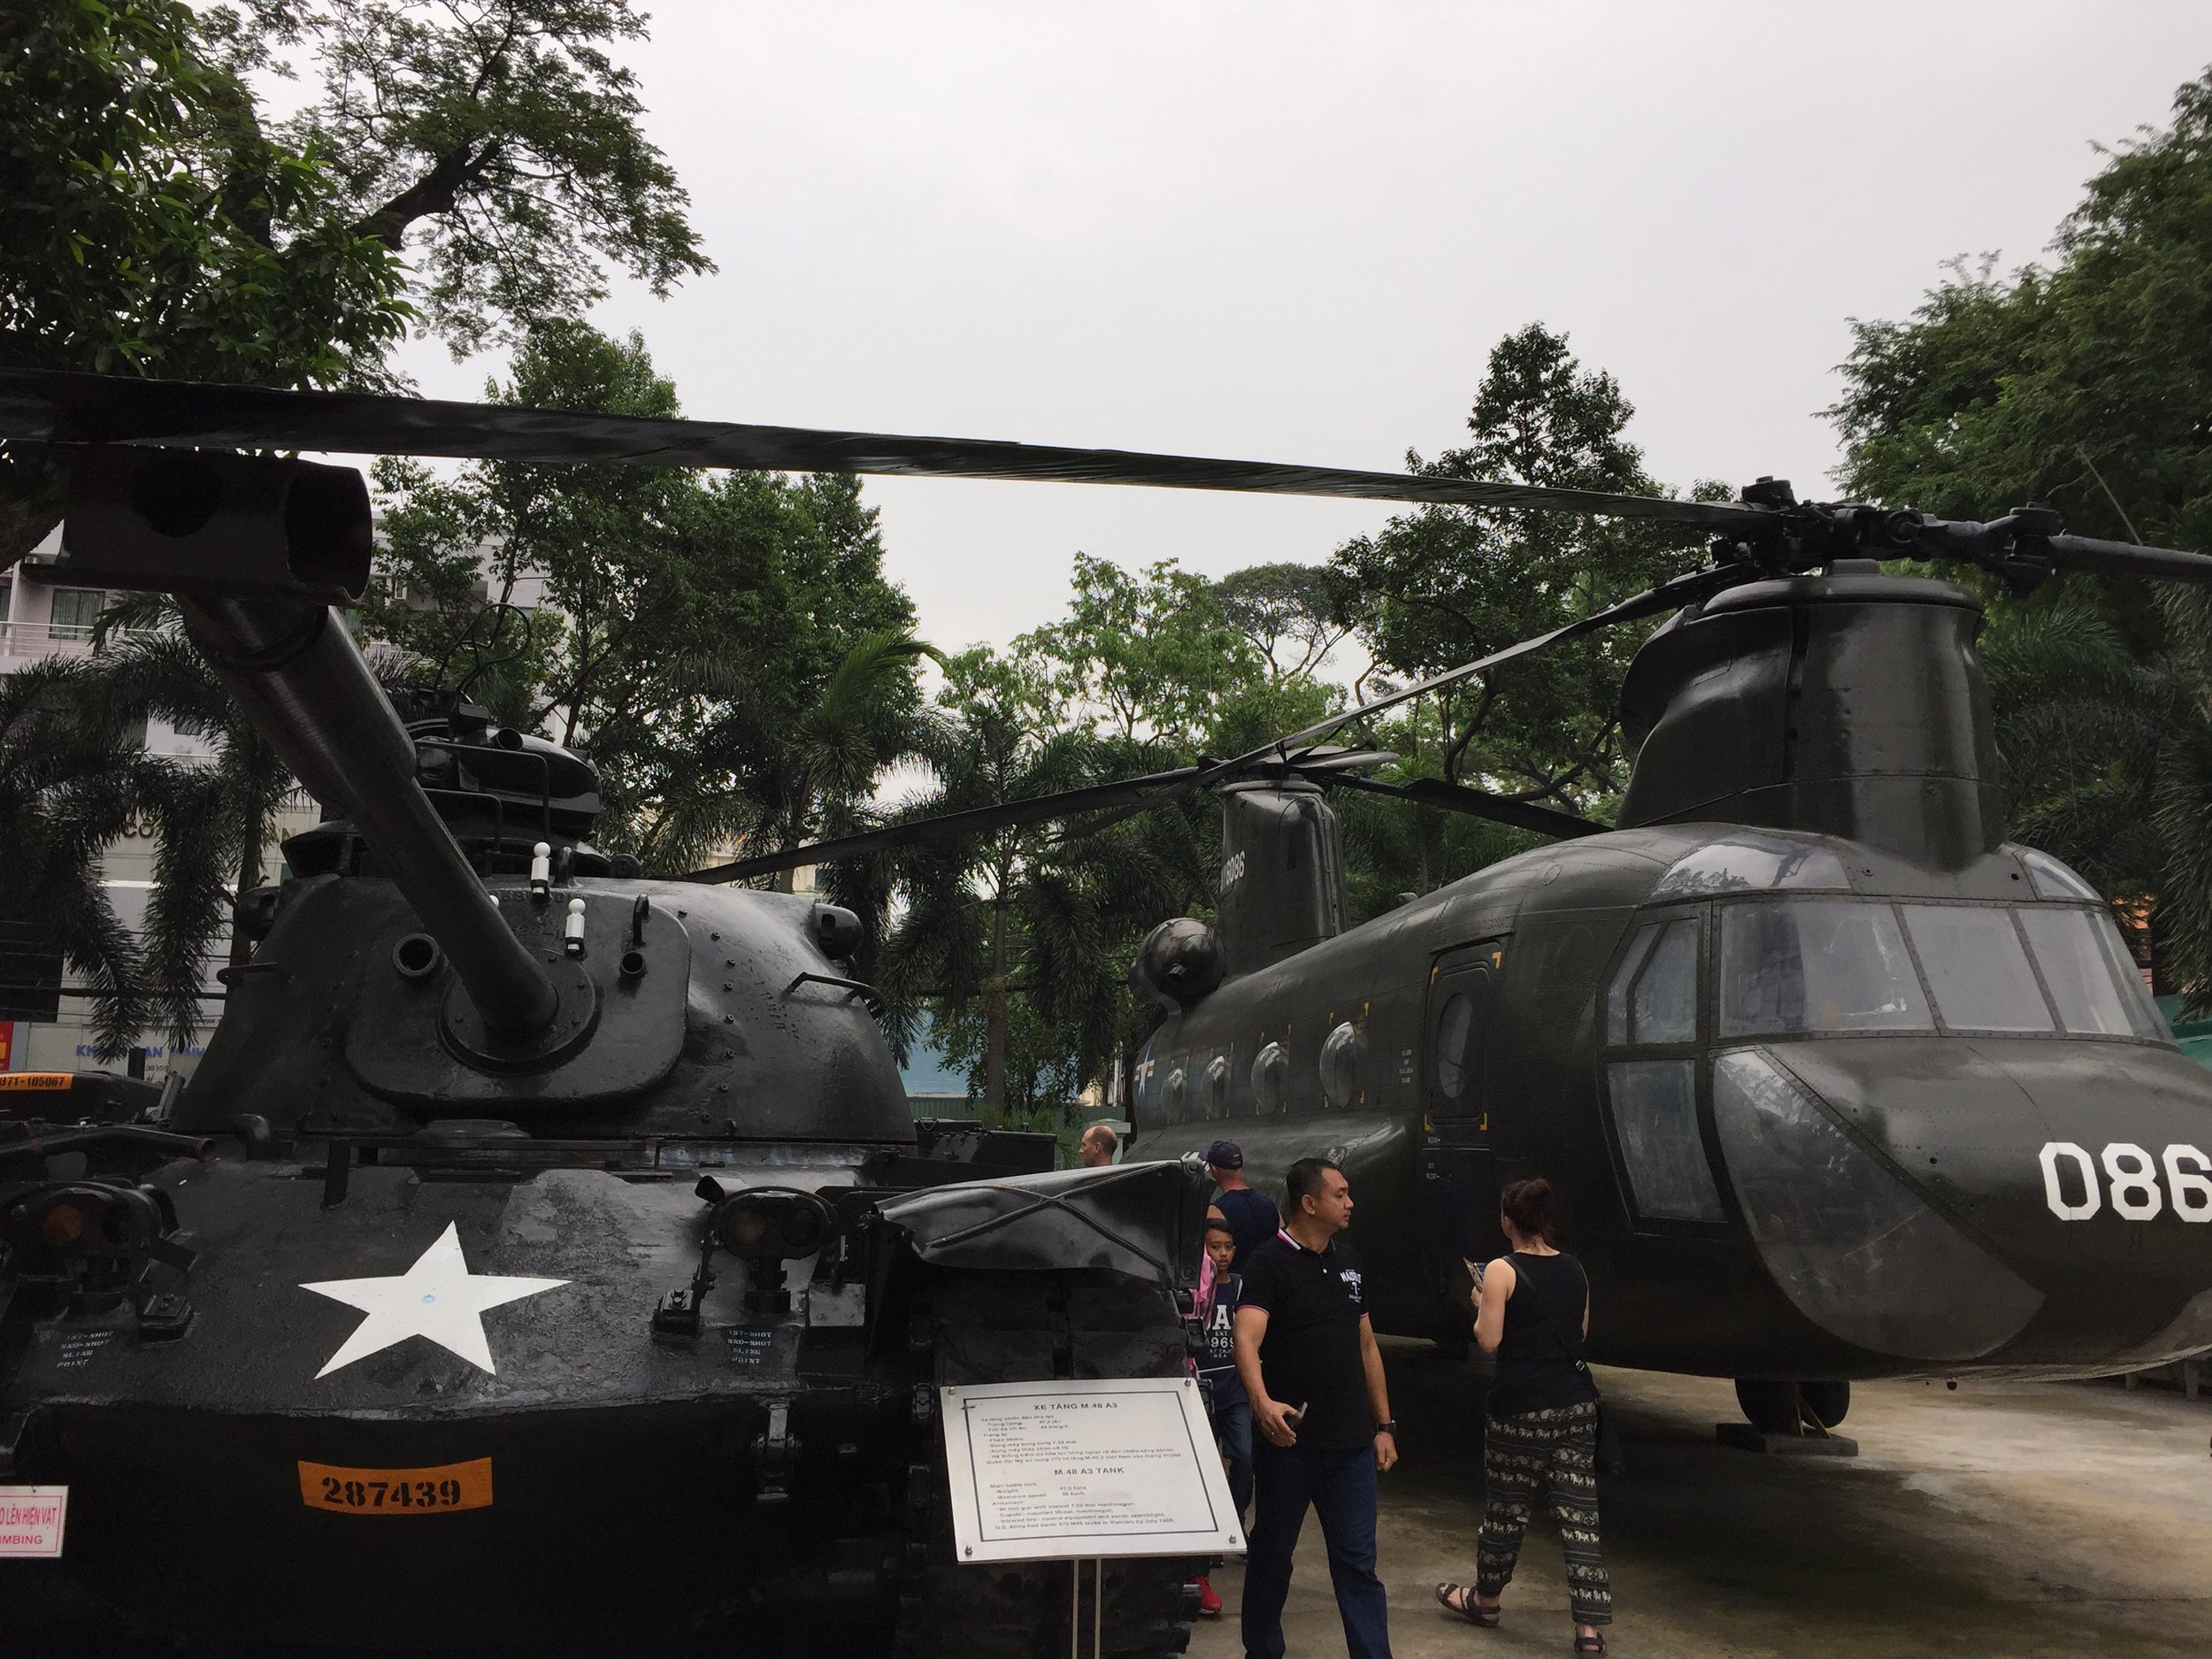 I had no idea how huge these Apache helicopters were - they're massive.